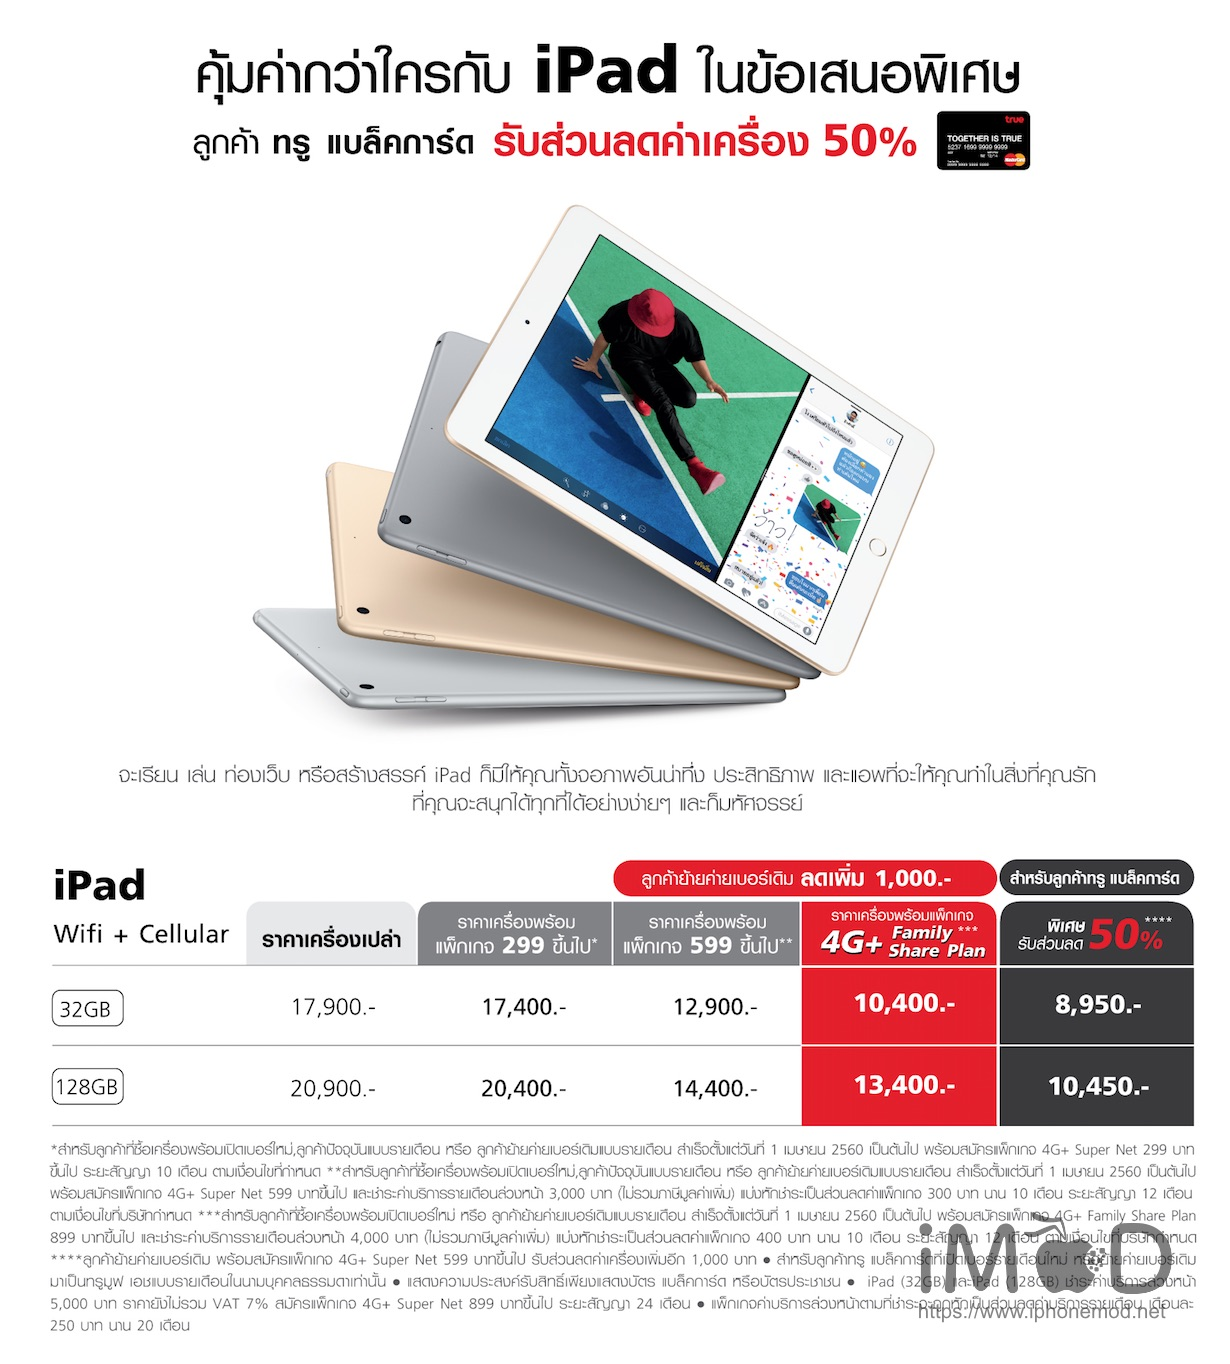 ipad 9.7 tmr may promo